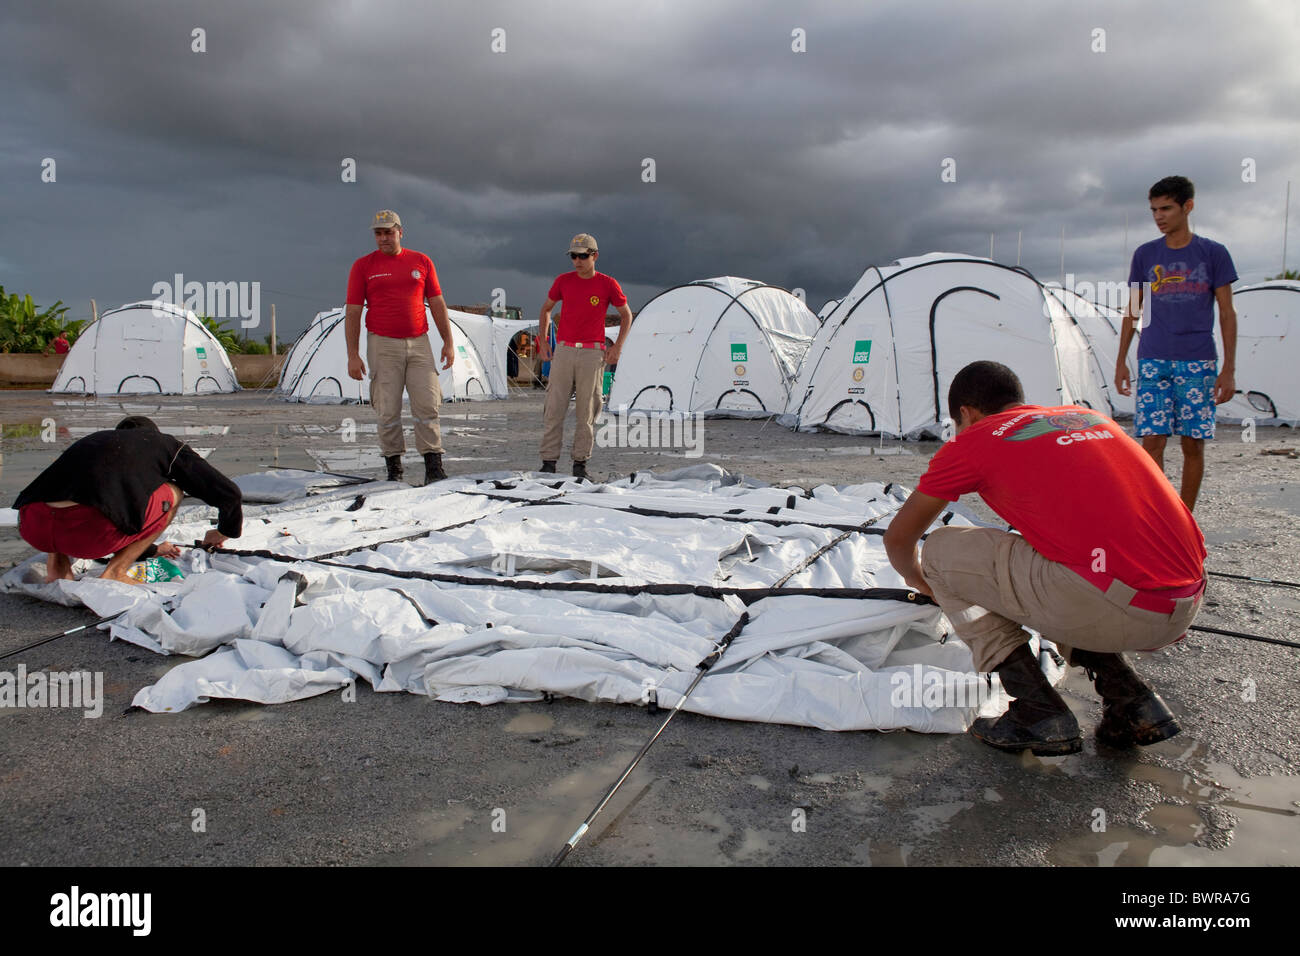 Members of Alegoas Fire Brigade assist in setting up tnets at Uniao Dos Palmares, Alegoas, Brasil - Stock Image